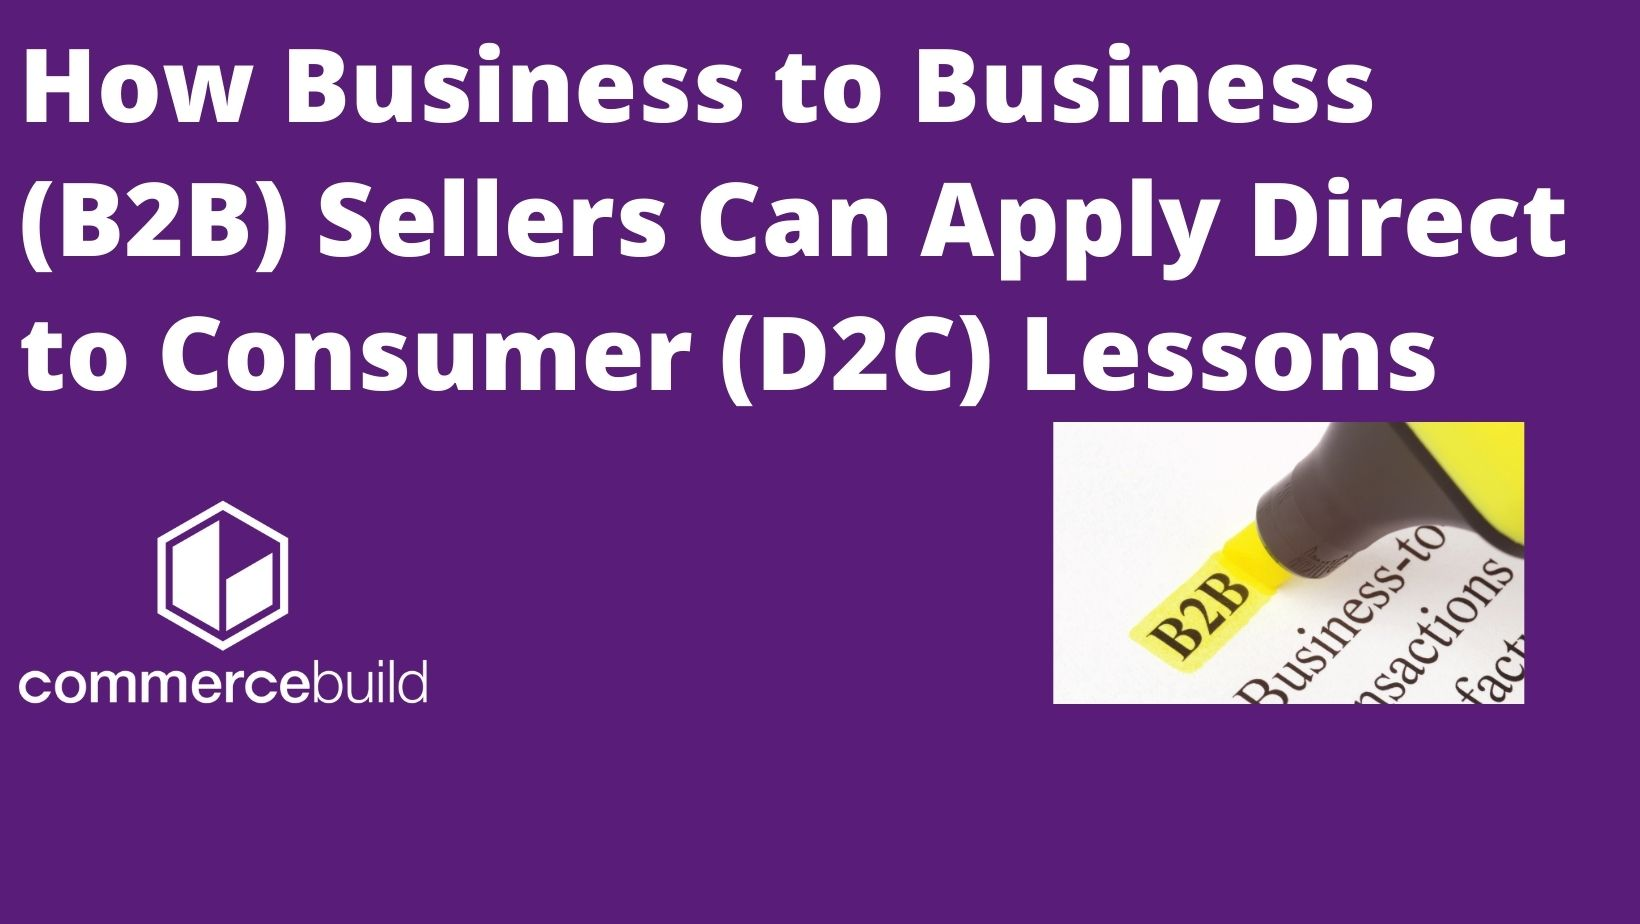 How Business to Business (B2B) Sellers Can Apply Direct to Consumer (D2C) Lessons